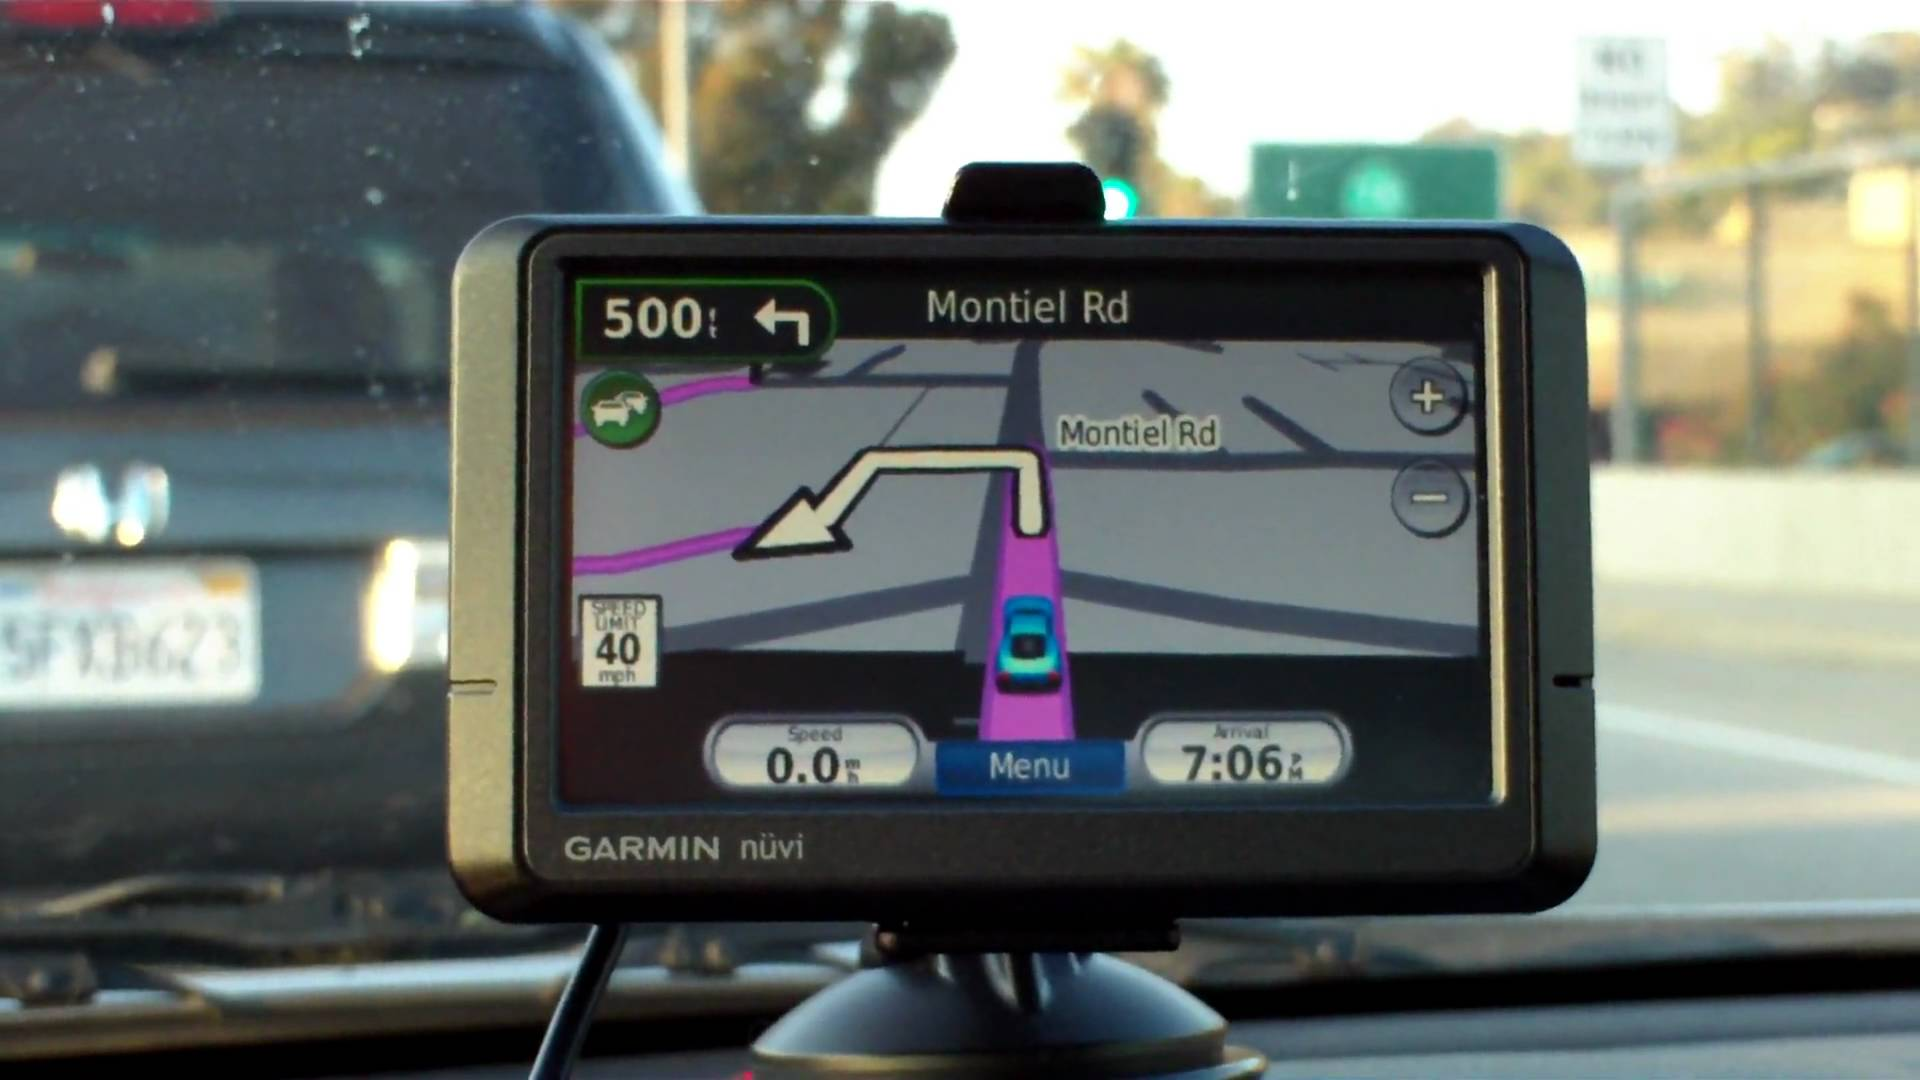 Gps Vehicle Tracker >> Tips for finding a GPS for your vehicle - TechDissected